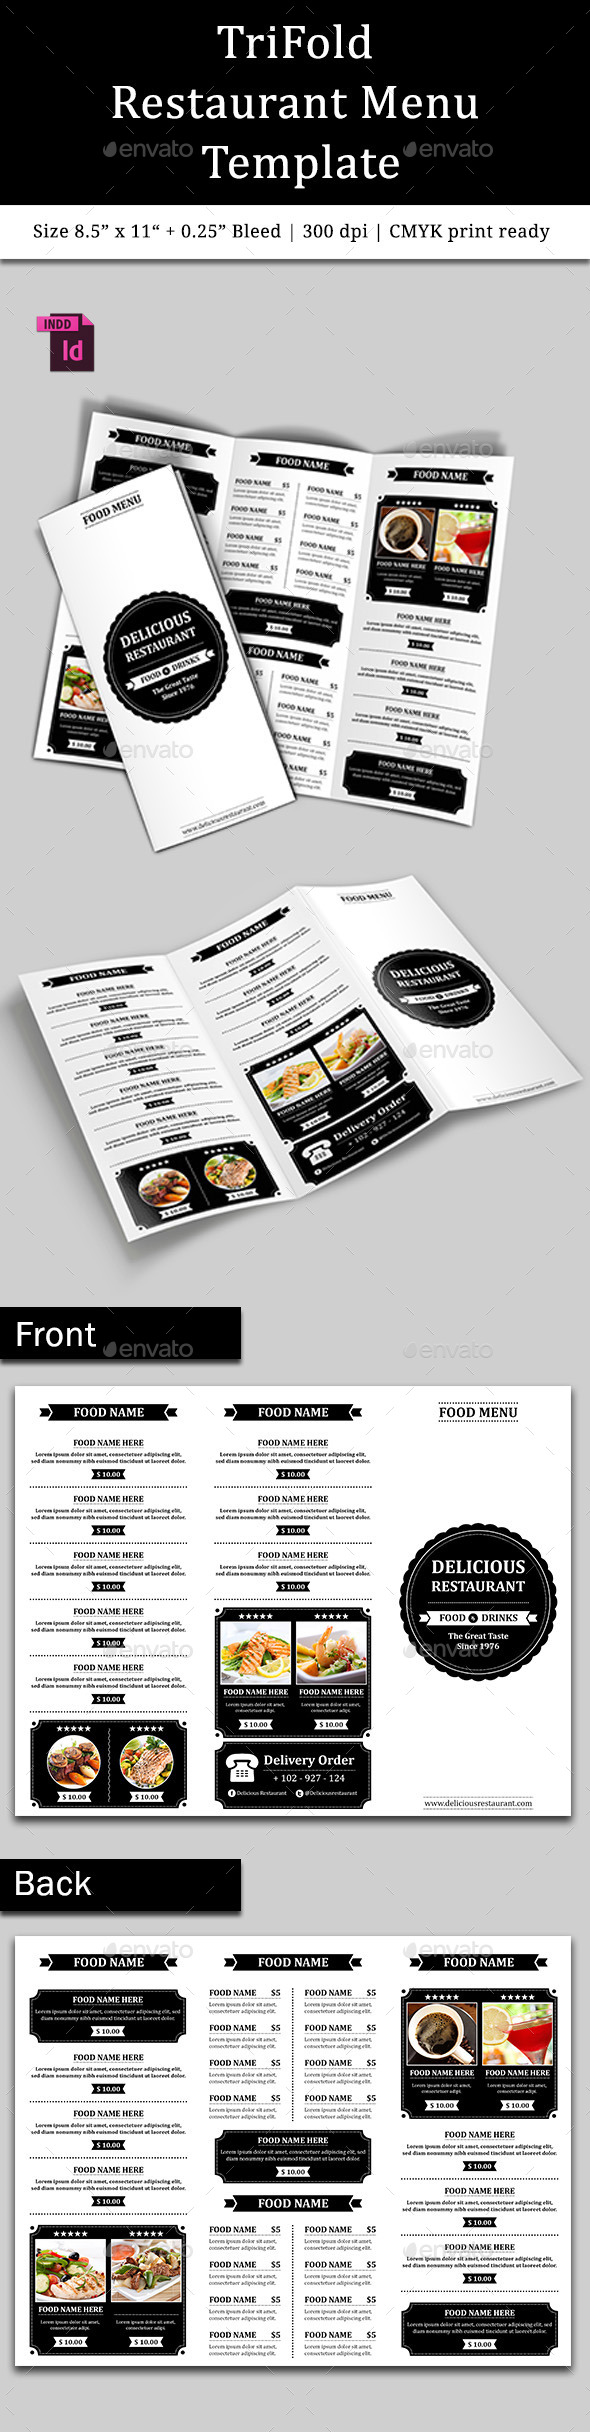 GraphicRiver TriFold Restaurant Menu Template Vol 6 10401951